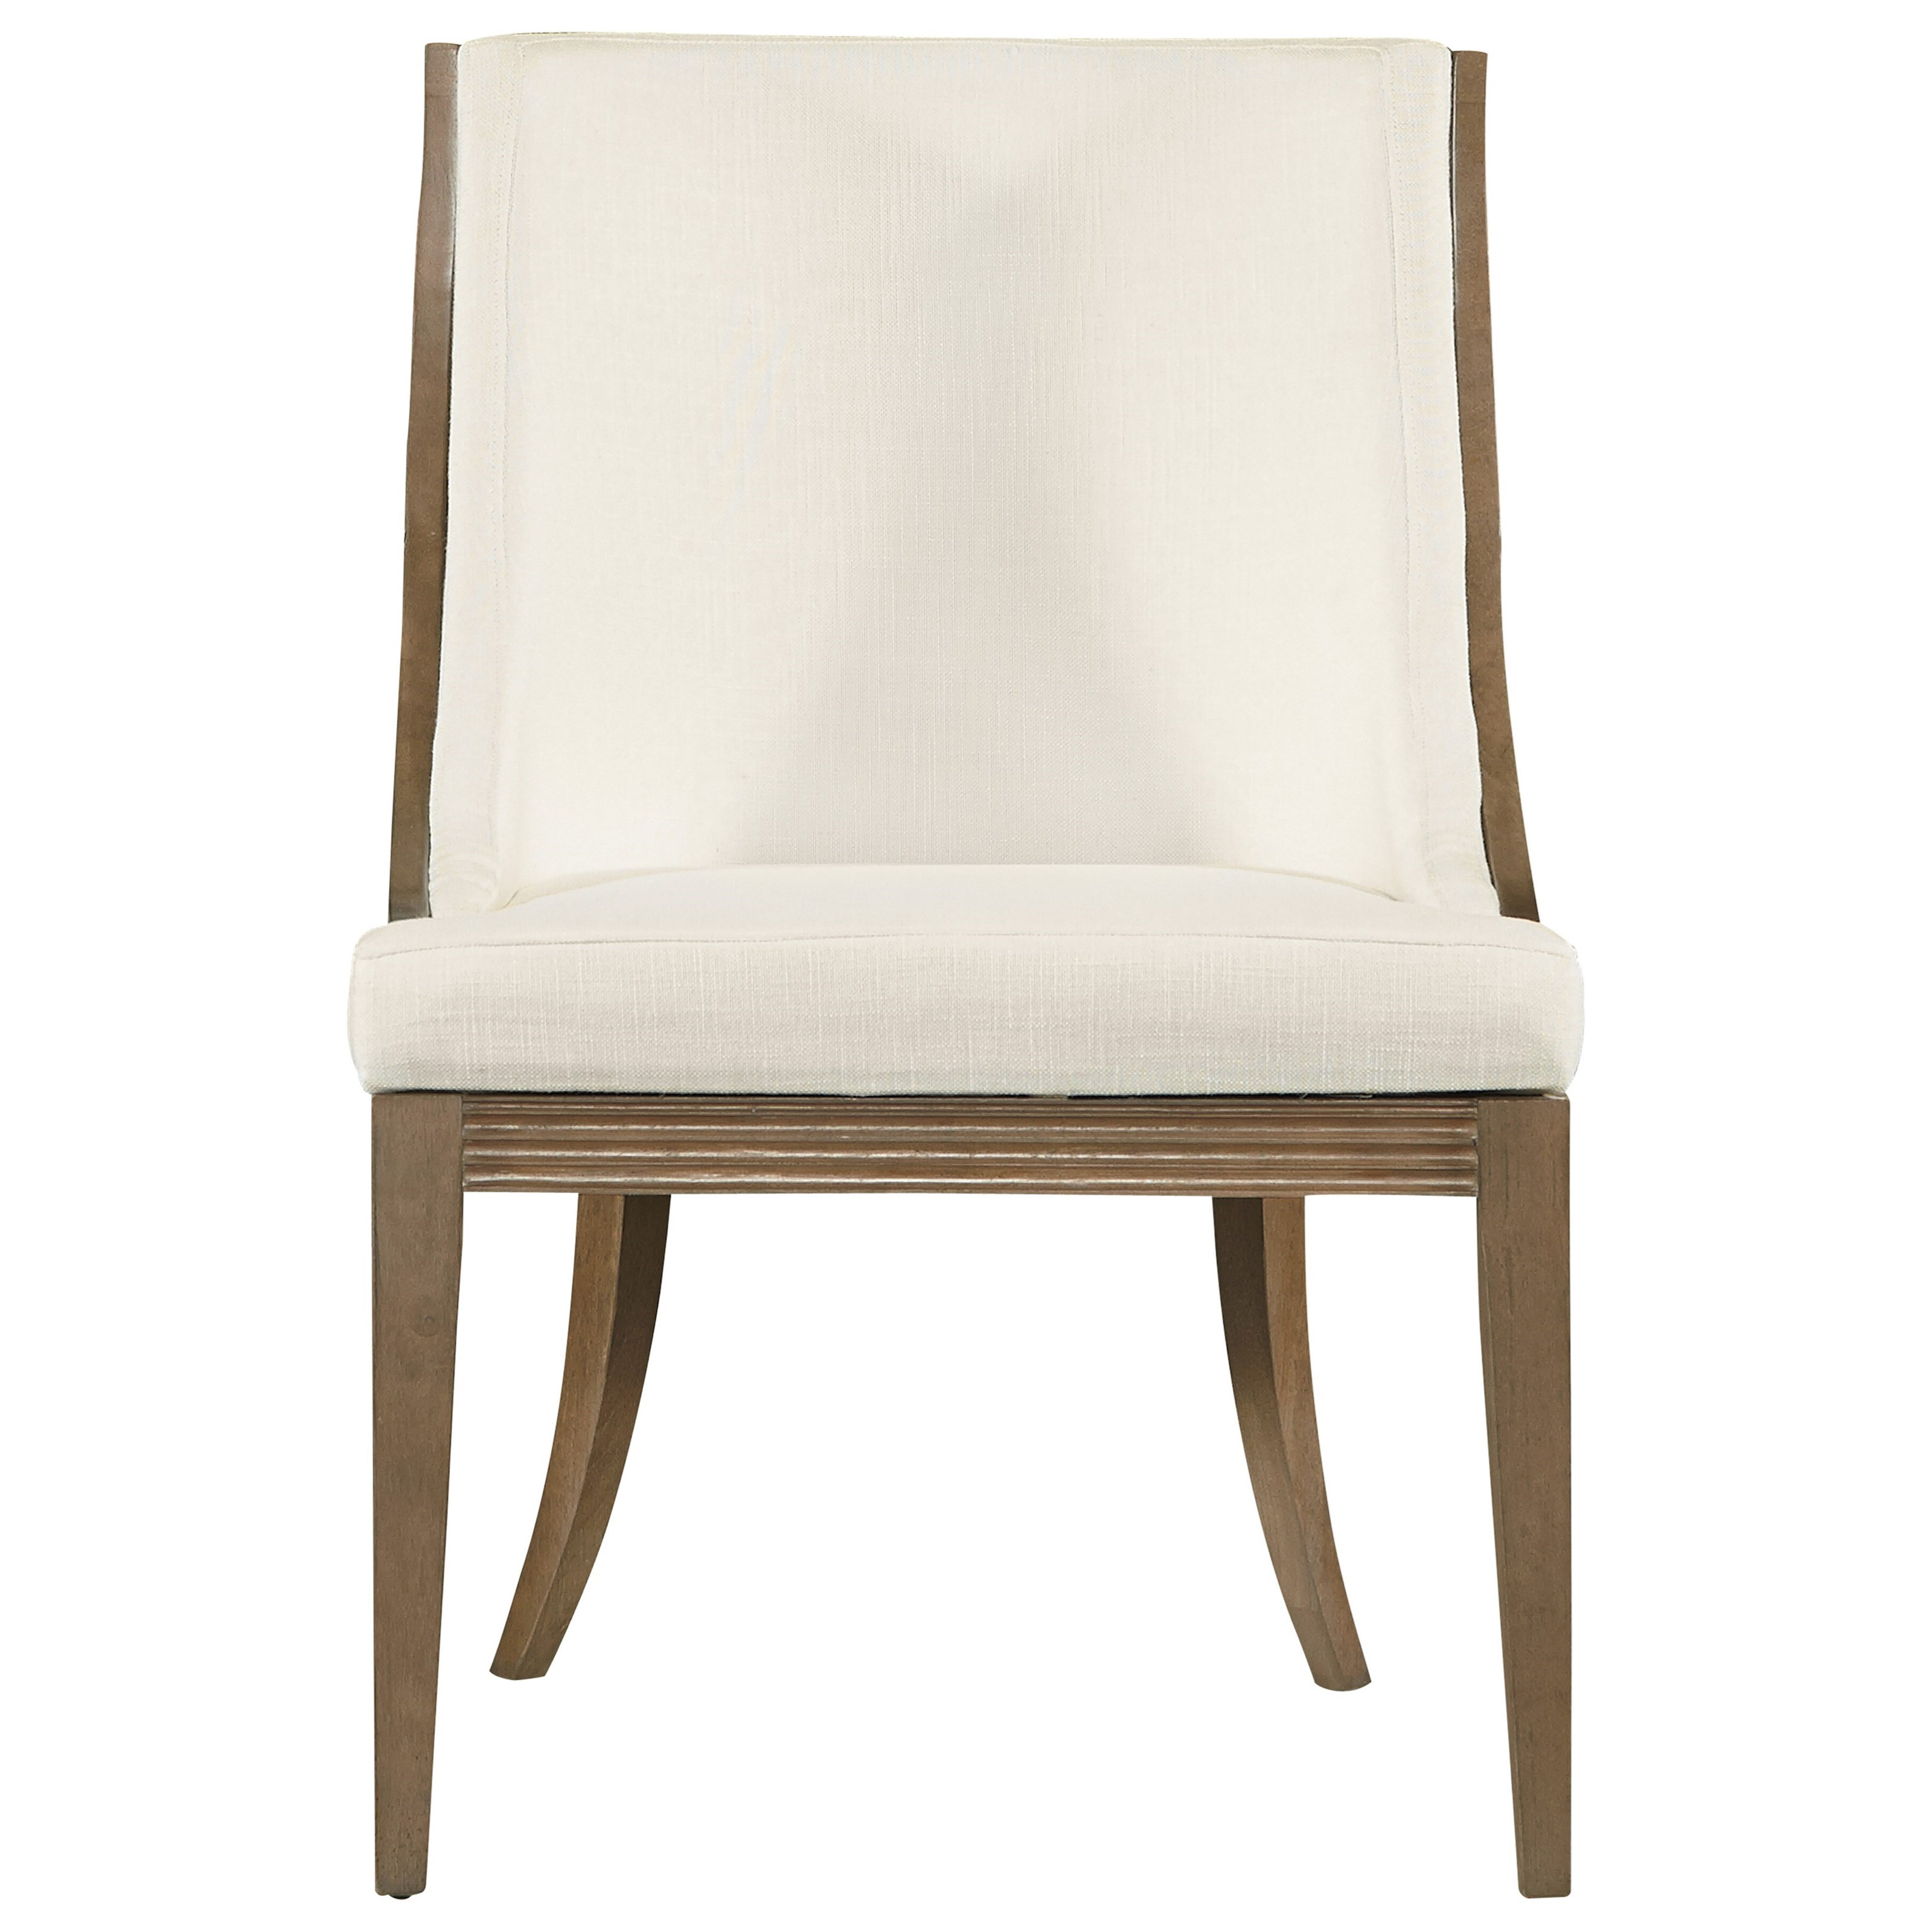 Mid Century Modern Upholstered Dining Chair With Ladder Back